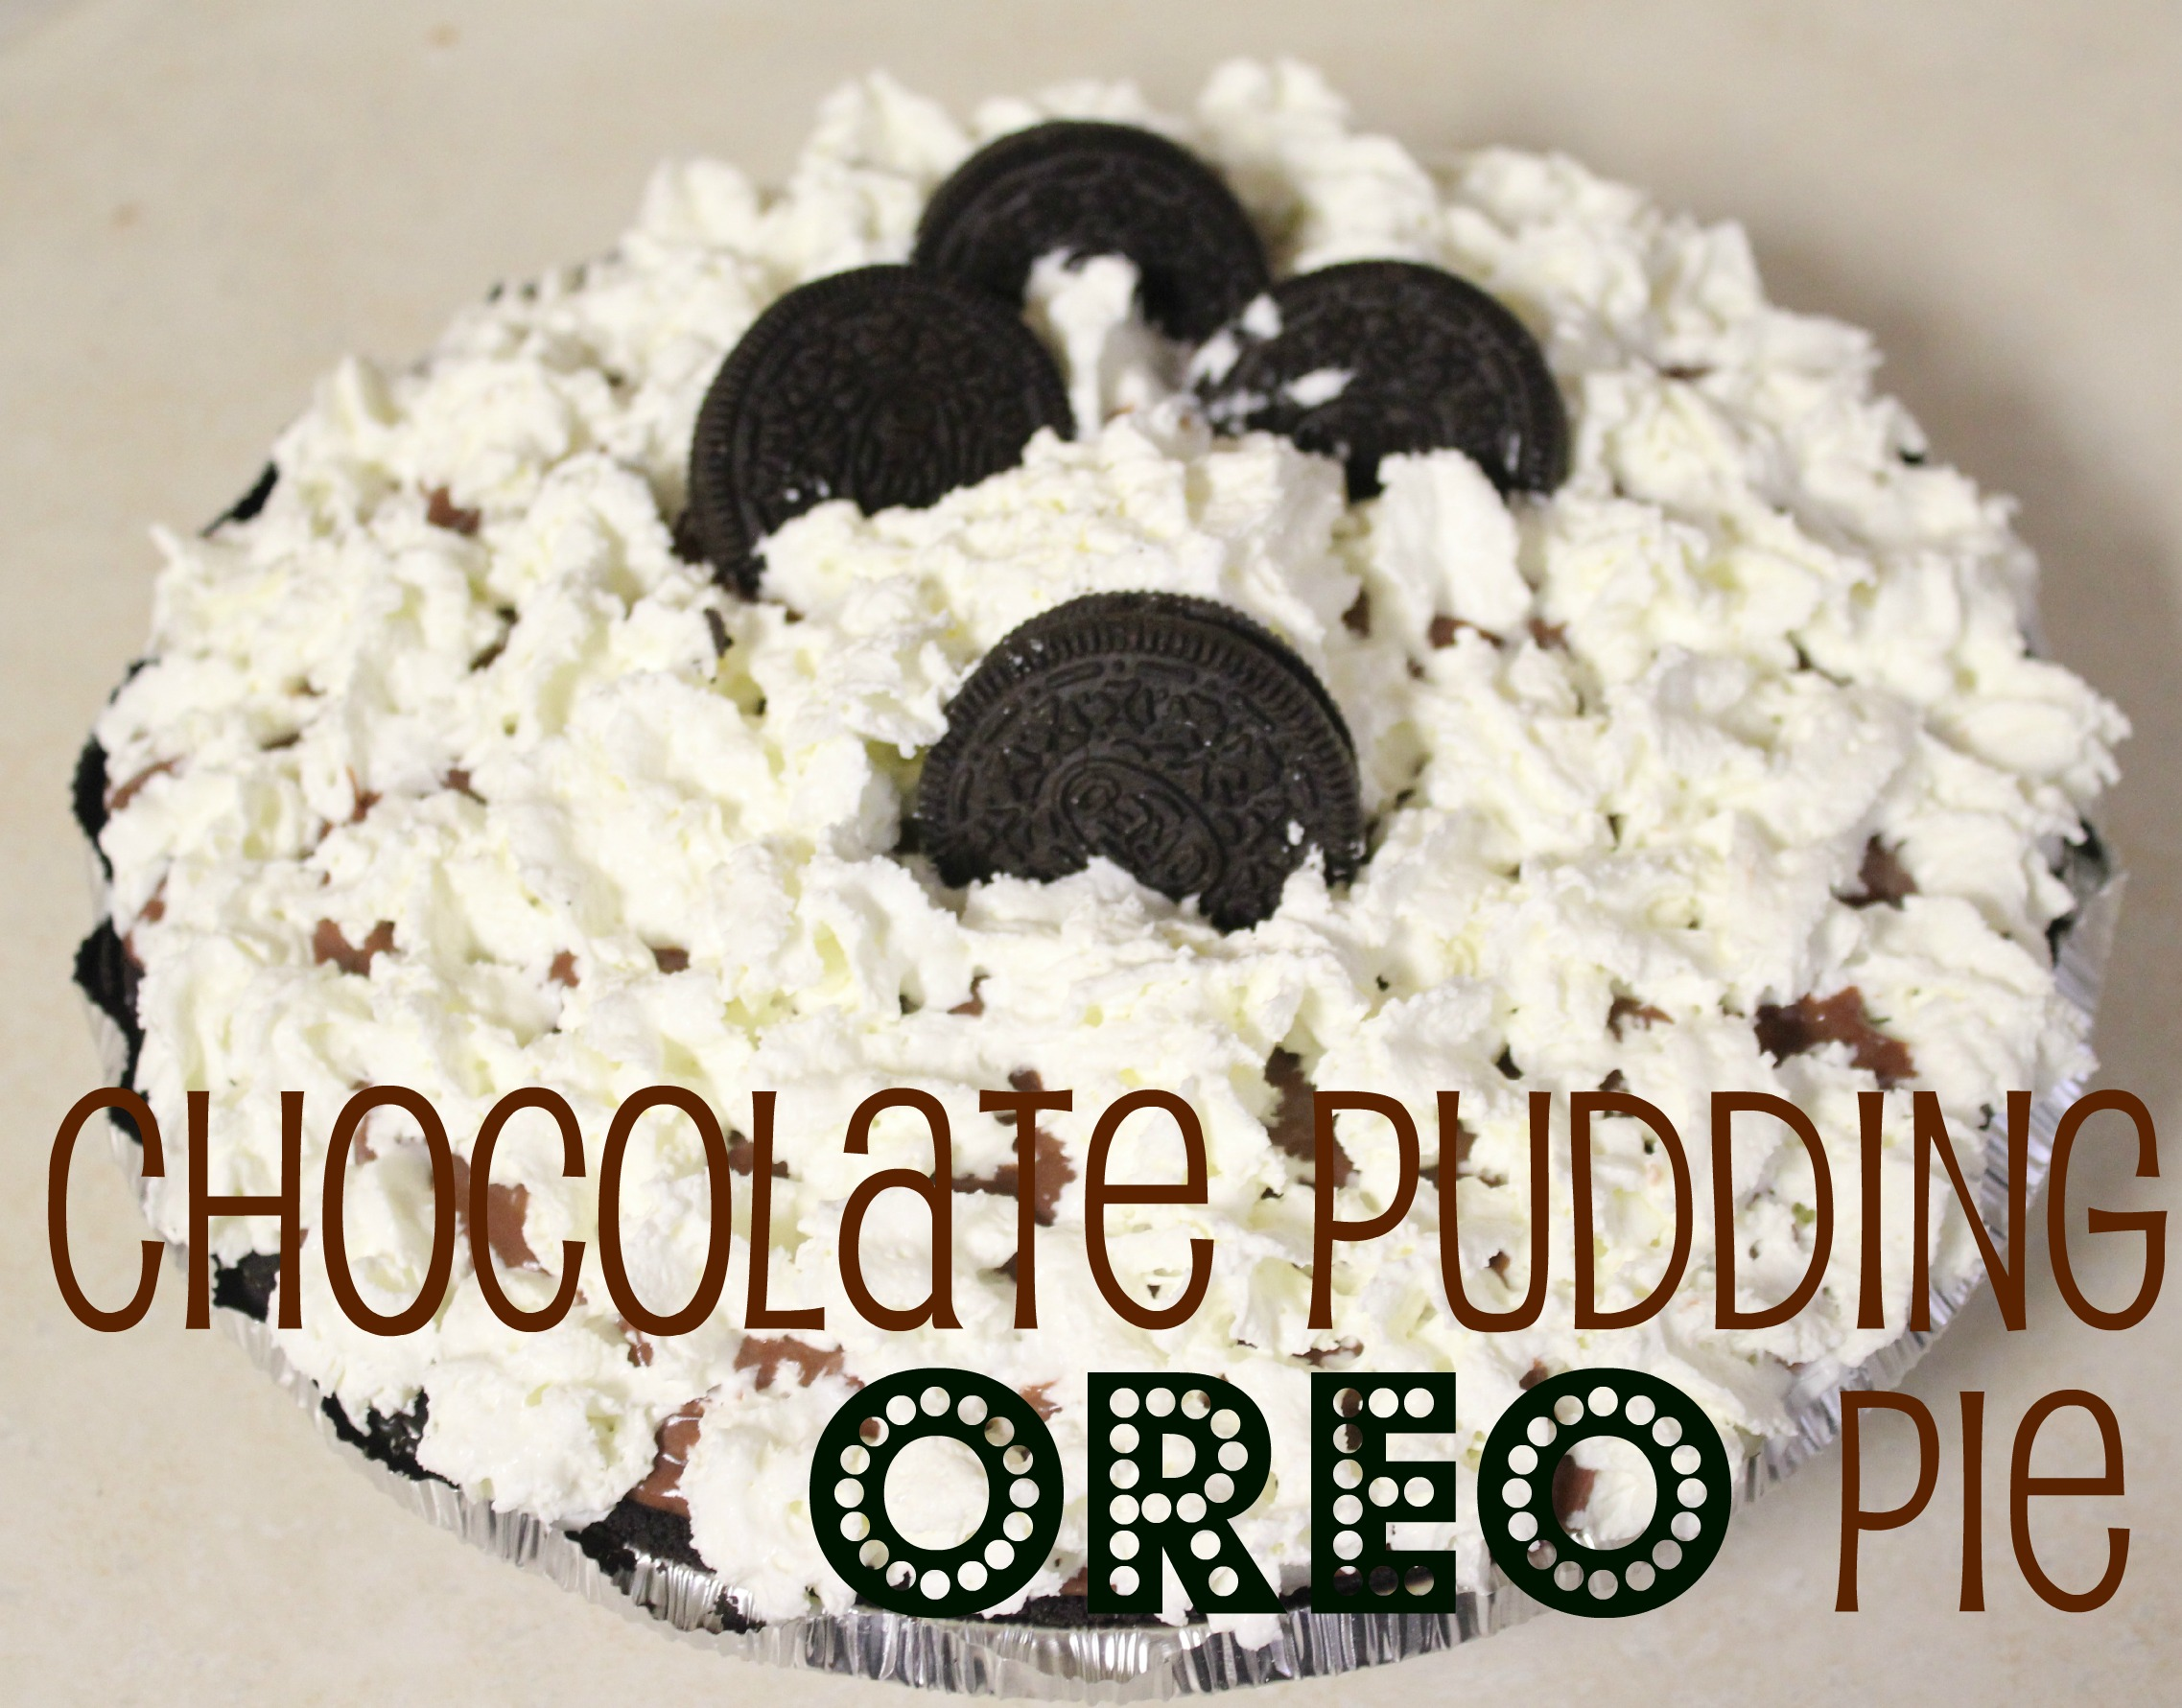 Jello pudding pie recipes with cool whip